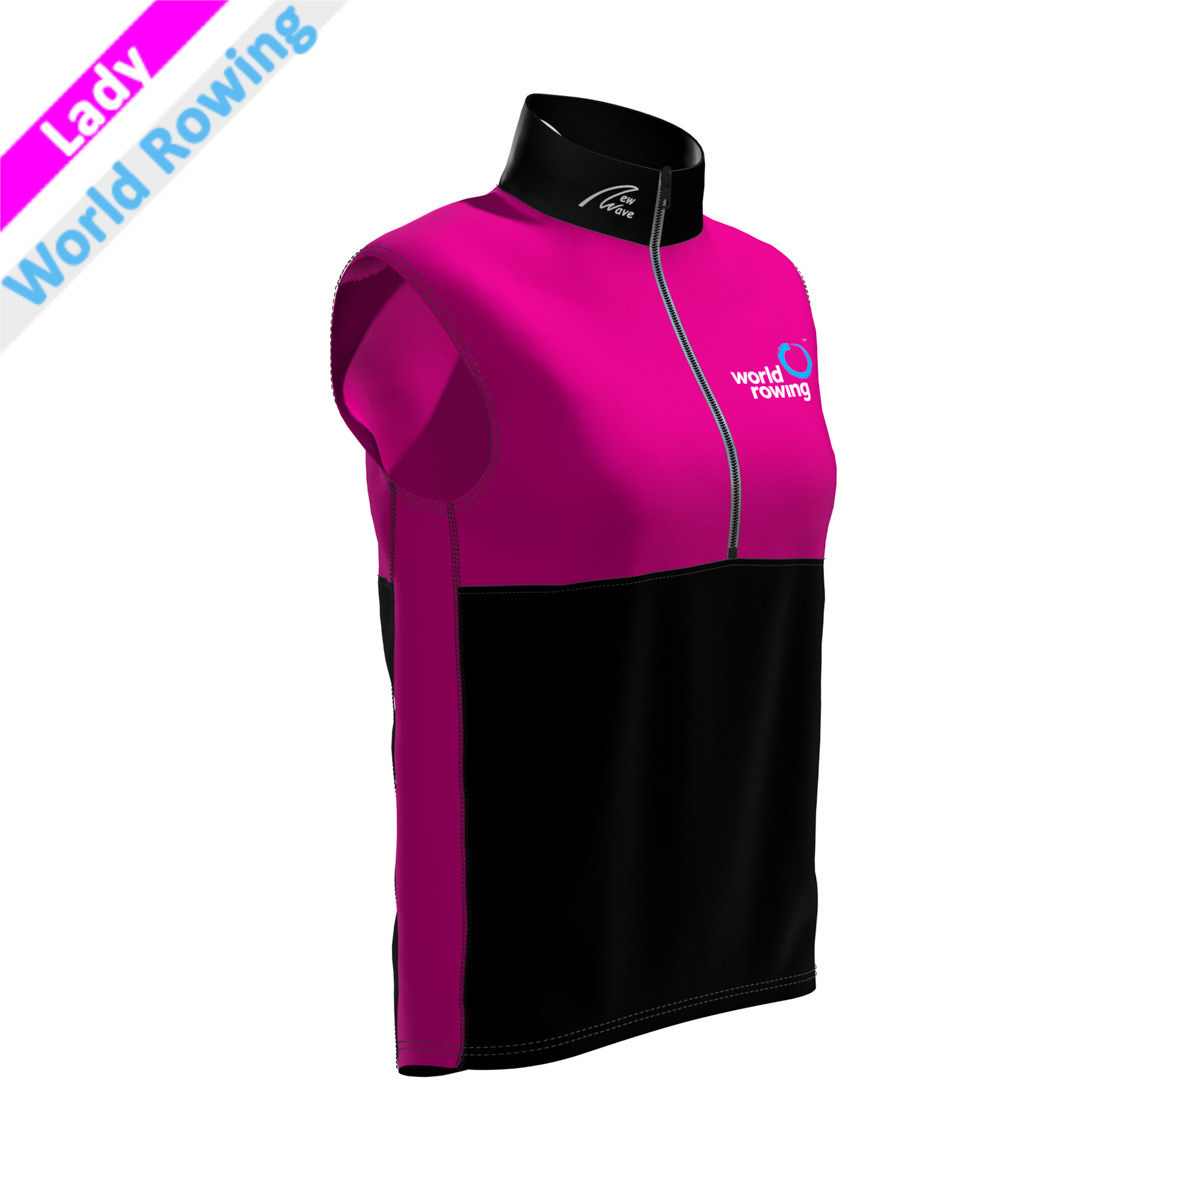 World Rowing Vest - Lady pink